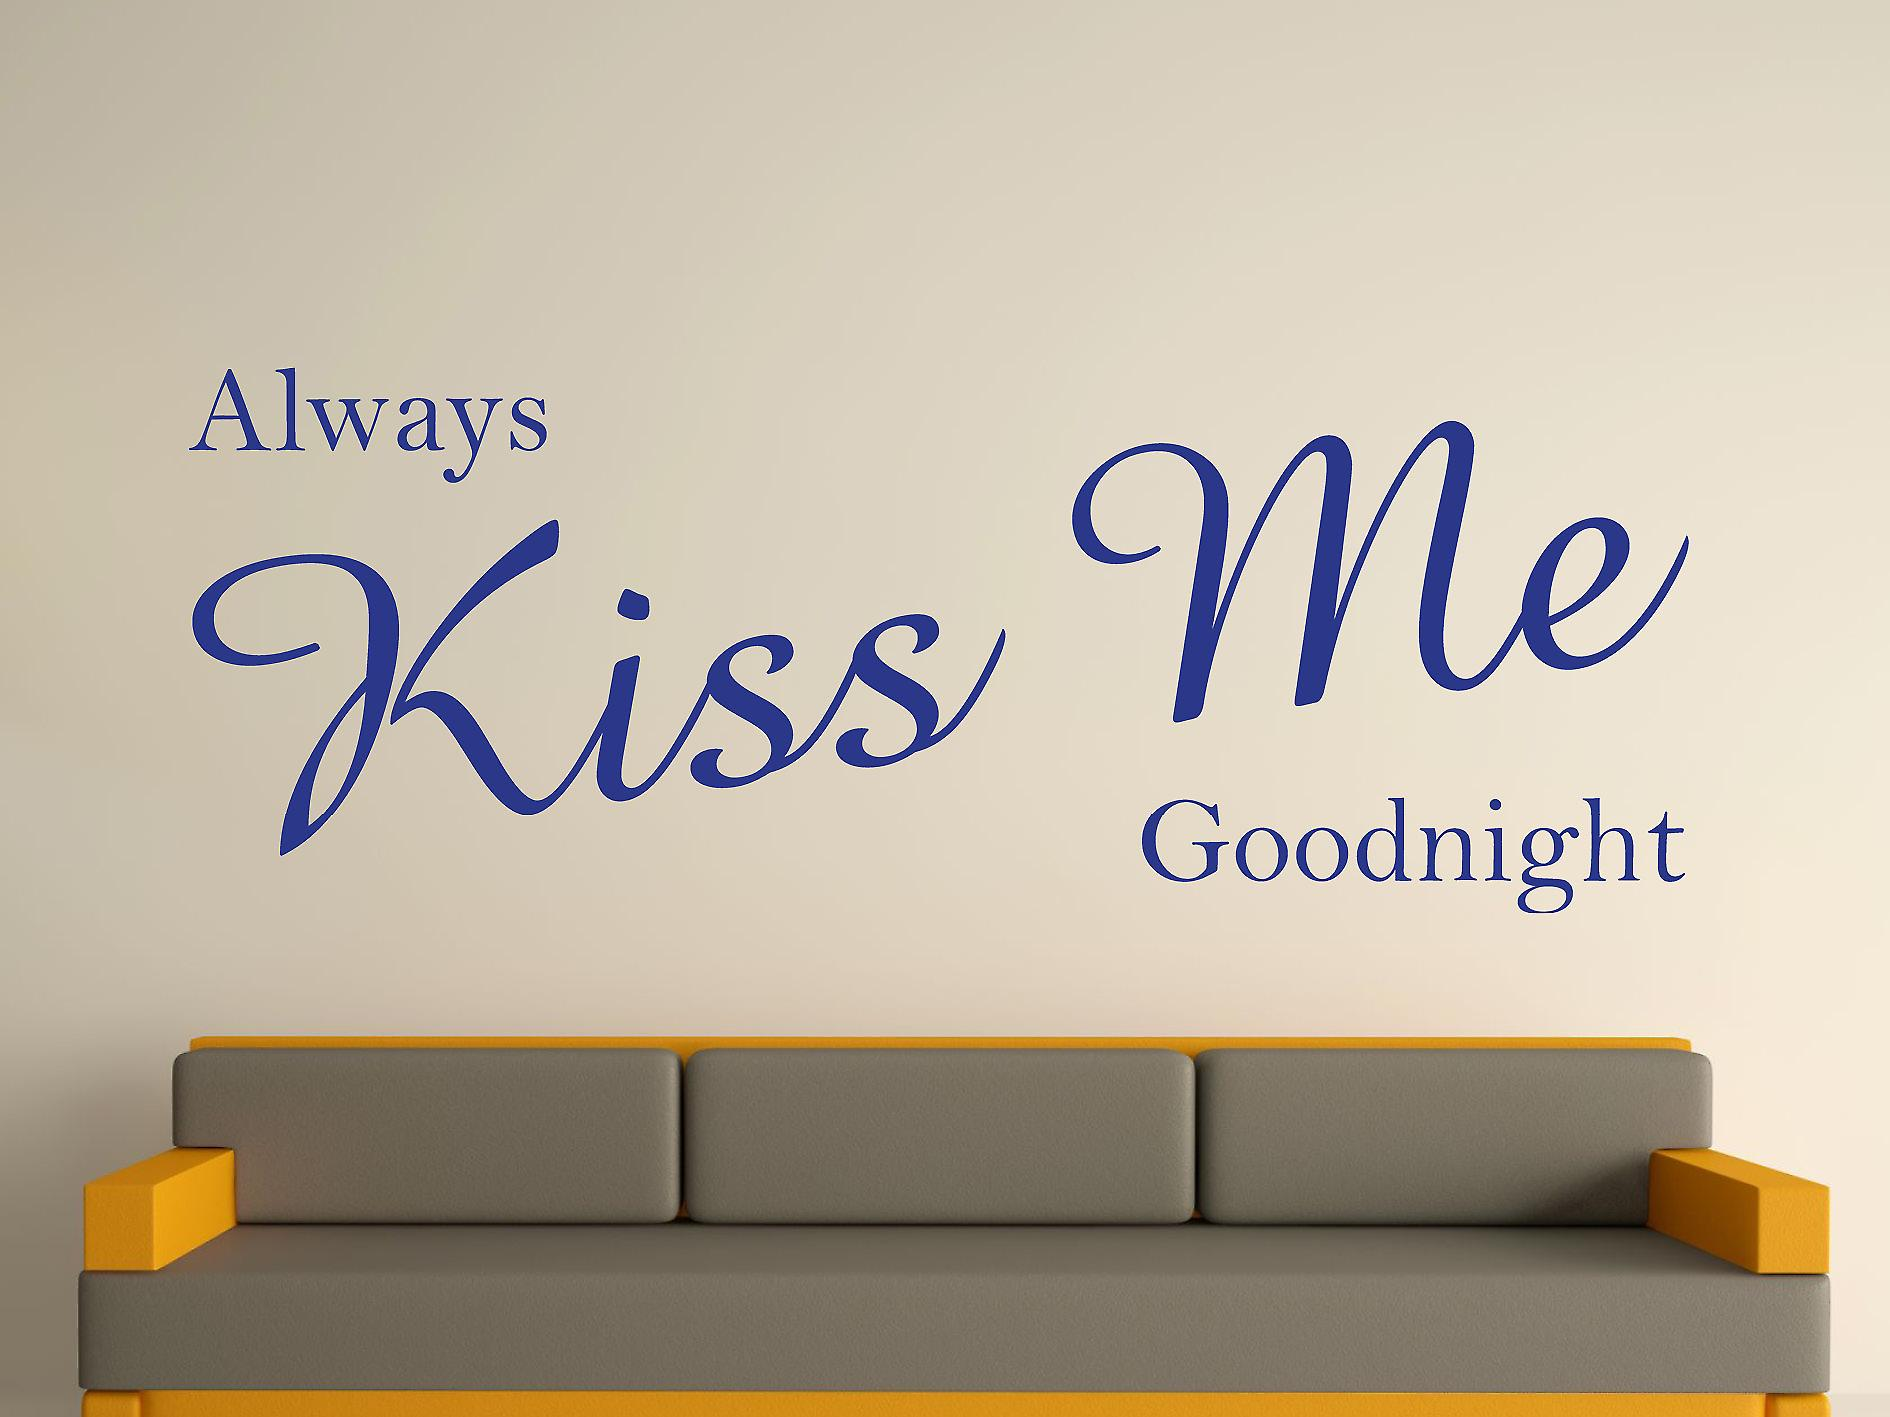 Always Kiss Me Goodnight Wall Art Sticker - Dark Blue